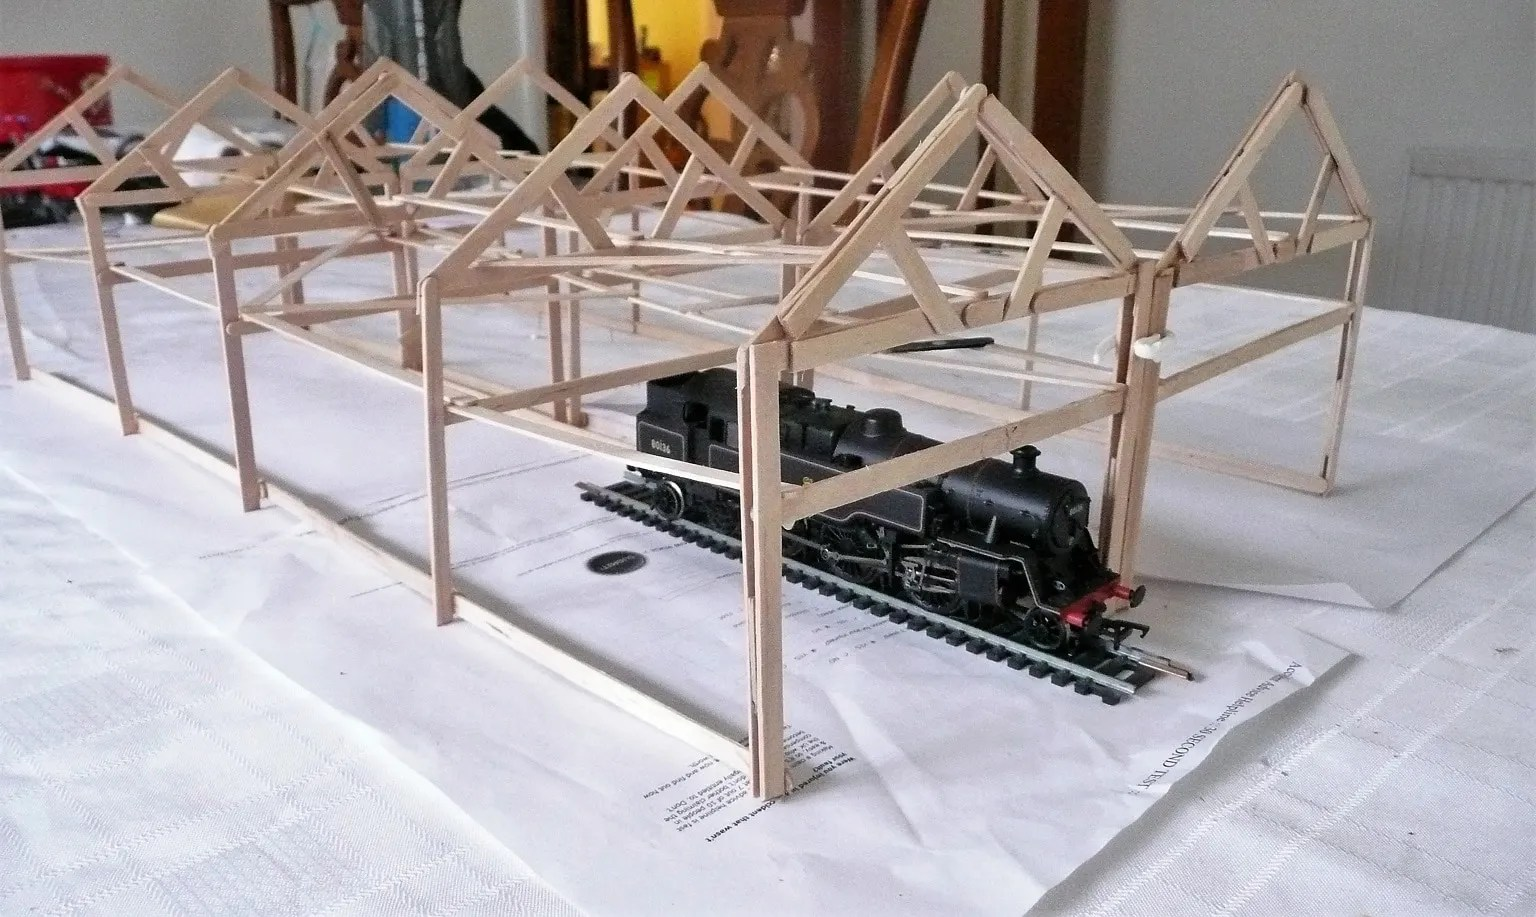 Gauge testing of the build model railway shed with a locomotive - 00 guage